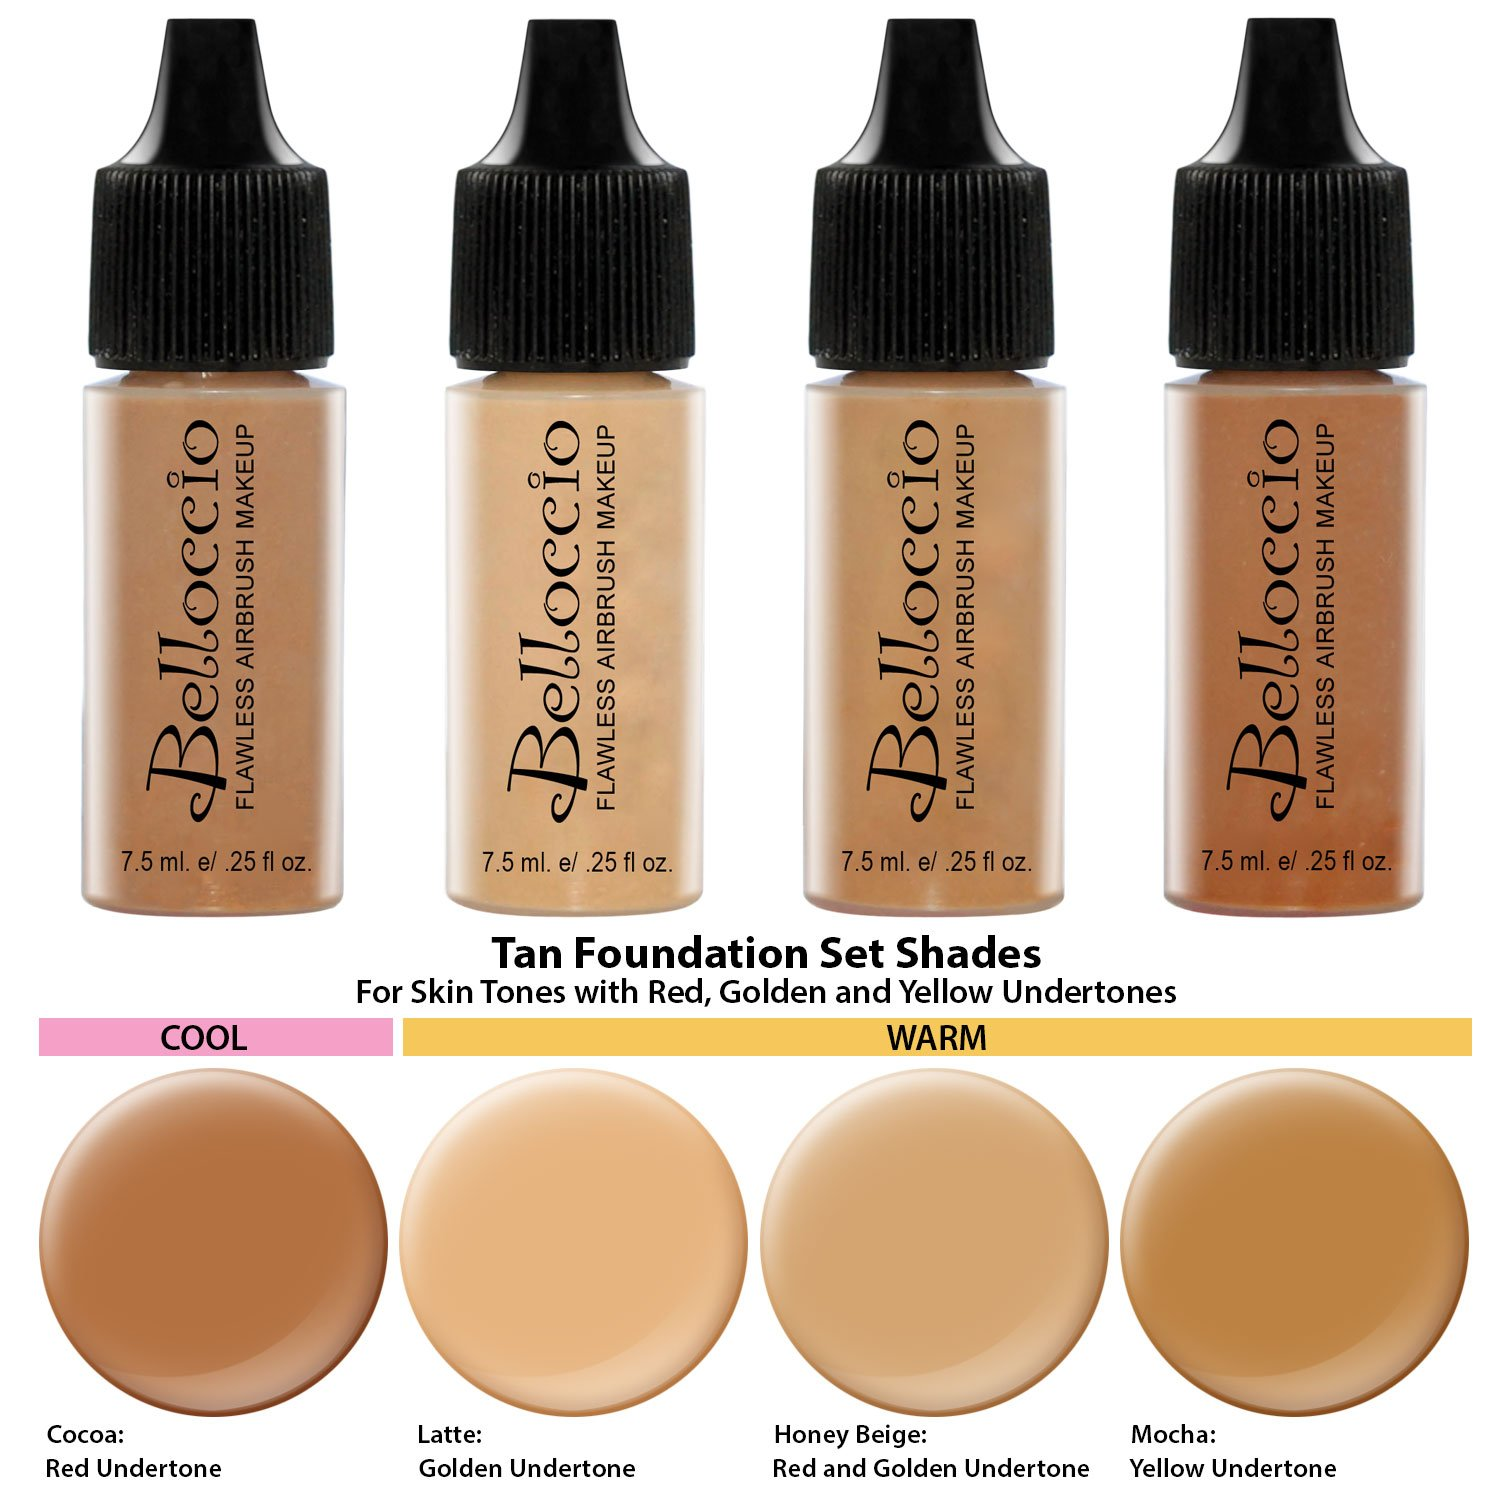 Belloccio Professional Beauty Airbrush Cosmetic Makeup System with 4 Tan Shades of Foundation in 1/4 Ounce Bottles - Kit Includes Blush, Bronzer and Highlighter and 3 Bonus Items and a Video Link by Belloccio (Image #3)